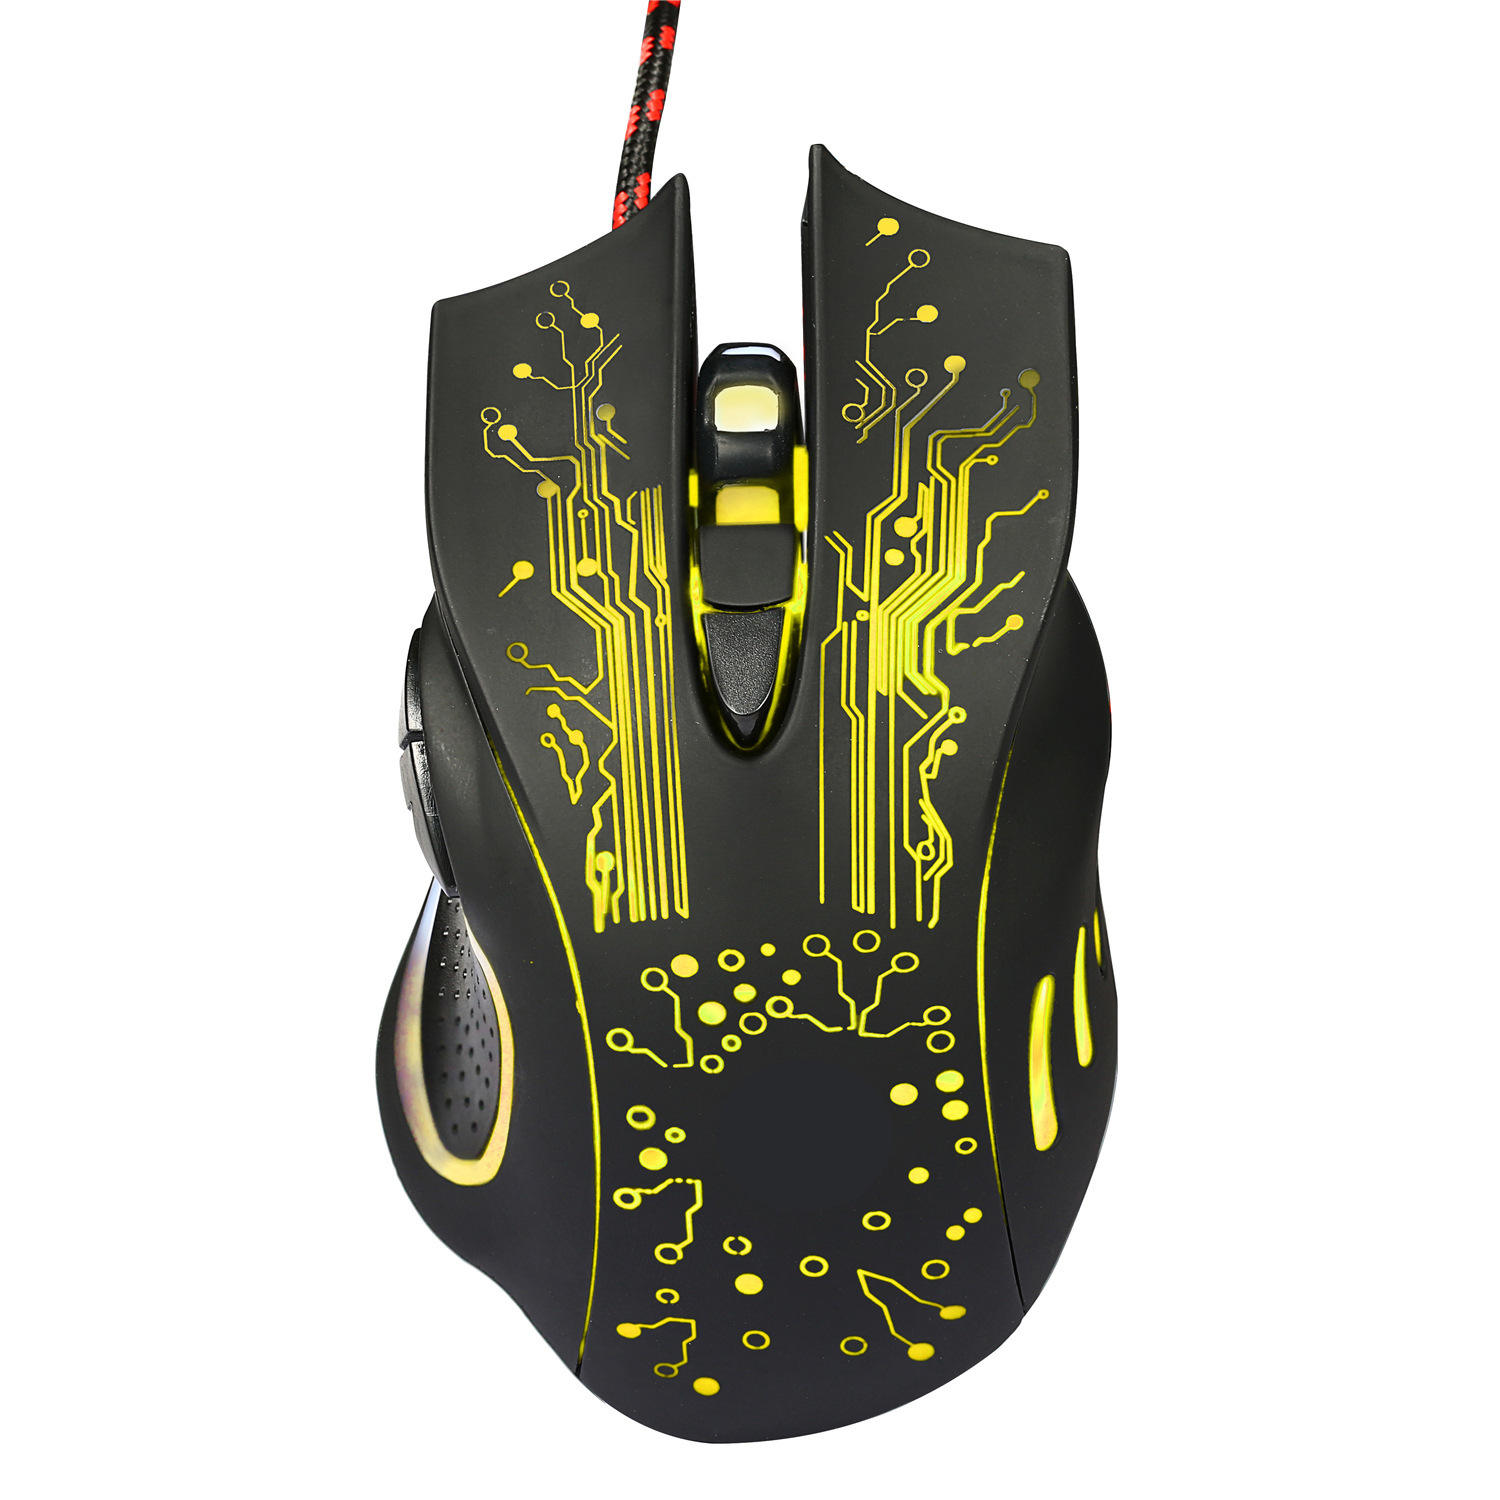 Amazon Vendita Calda 1600DPI Wired Gaming <span class=keywords><strong>Mouse</strong></span> Con La Luce <span class=keywords><strong>del</strong></span> LED per il Computer Utilizzando